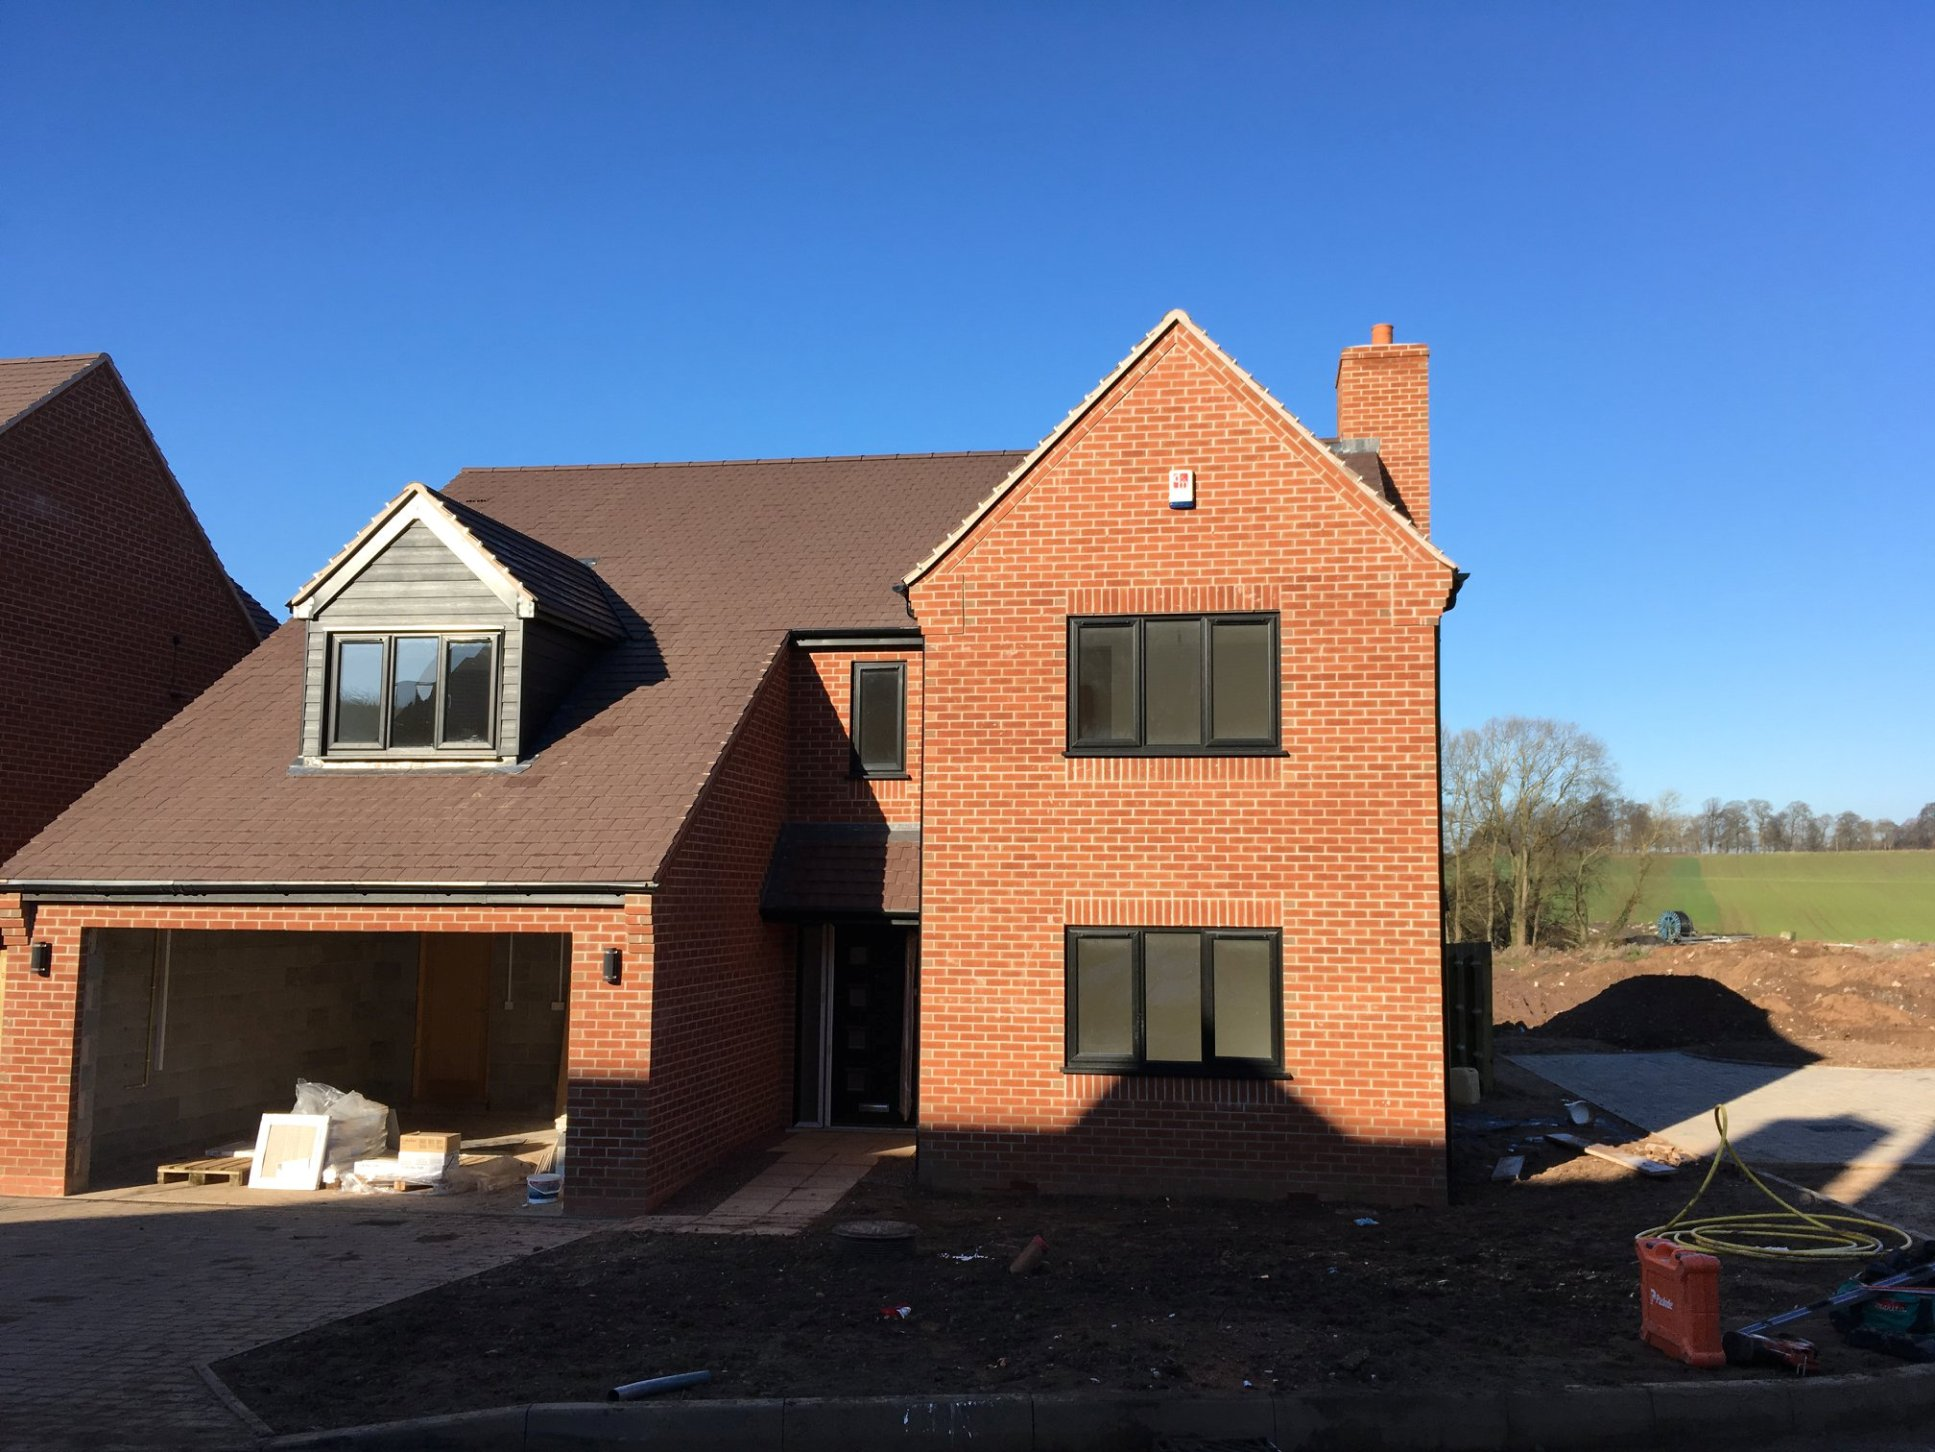 DBA Homes Morville Update - Plot 6 Stamp Duty paid for reservation in February!